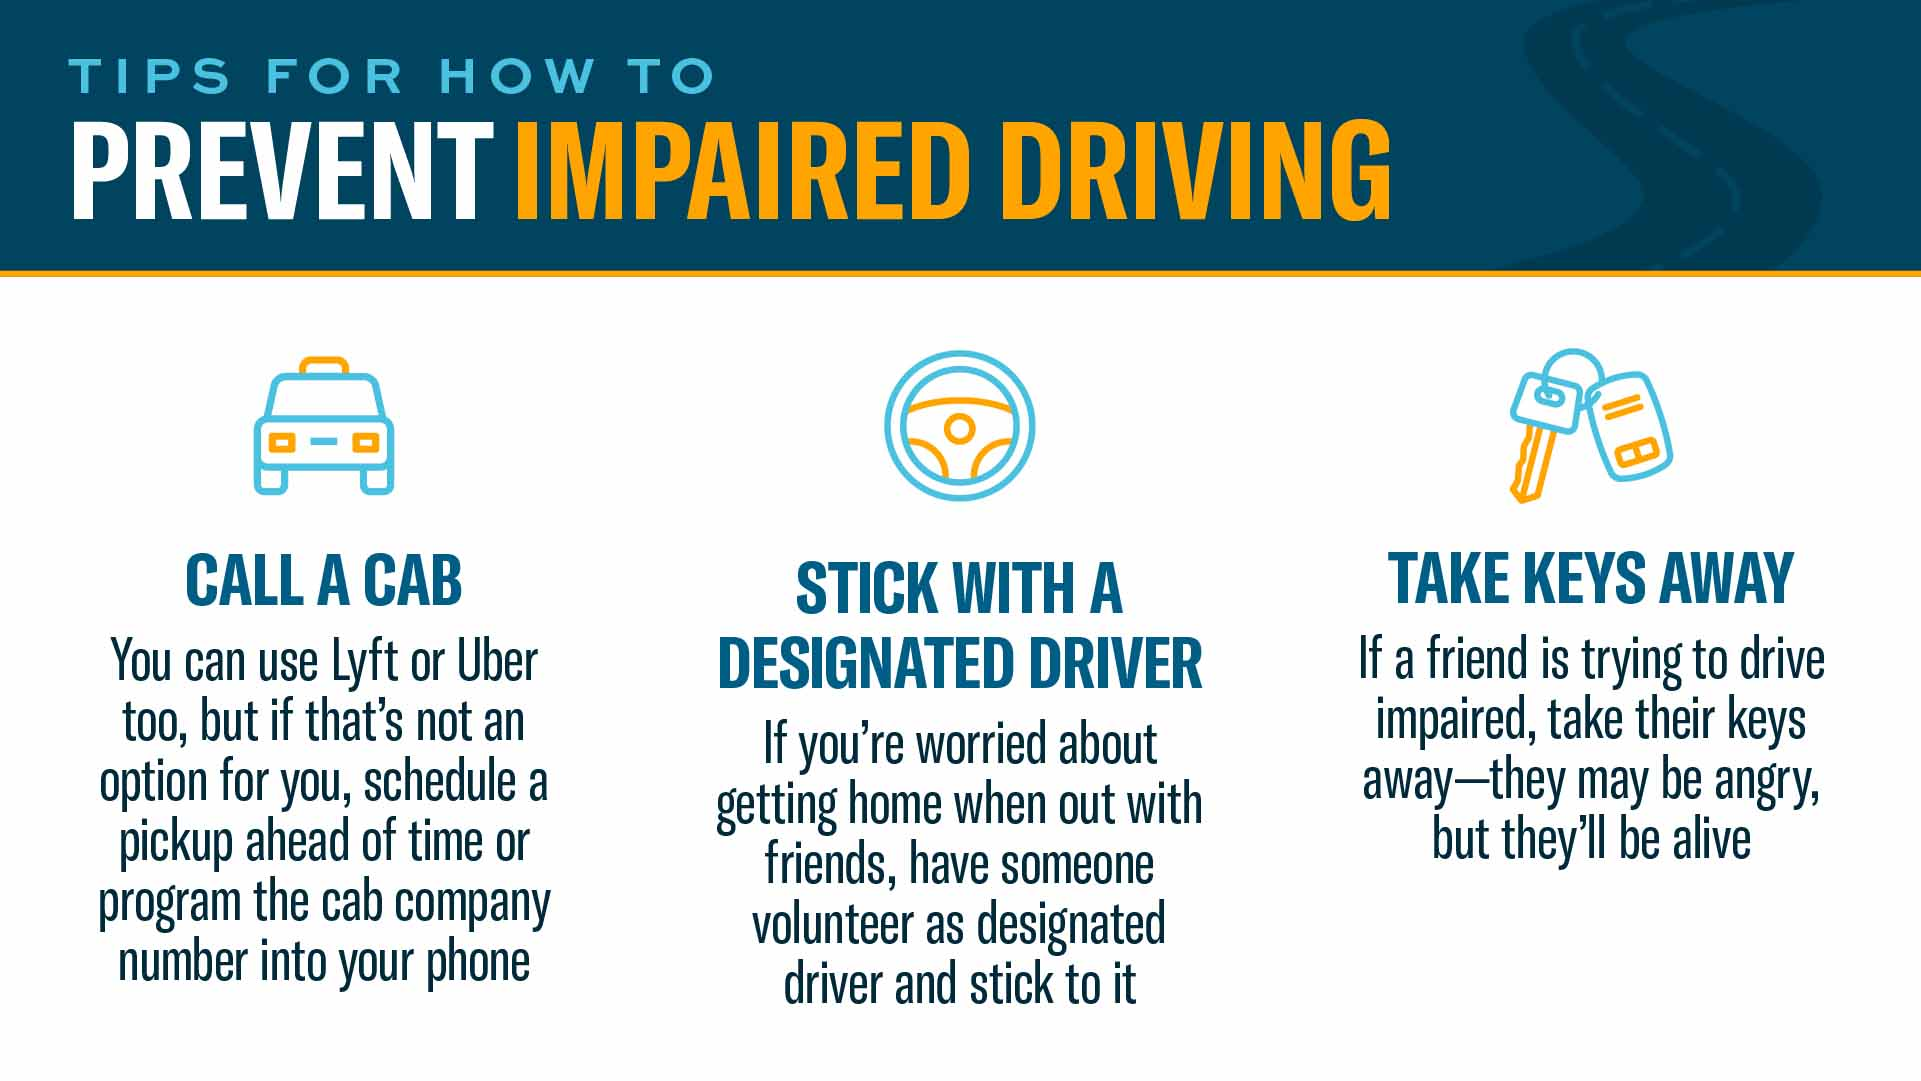 Prevent-Impaired-Driving-Safety-Endurance